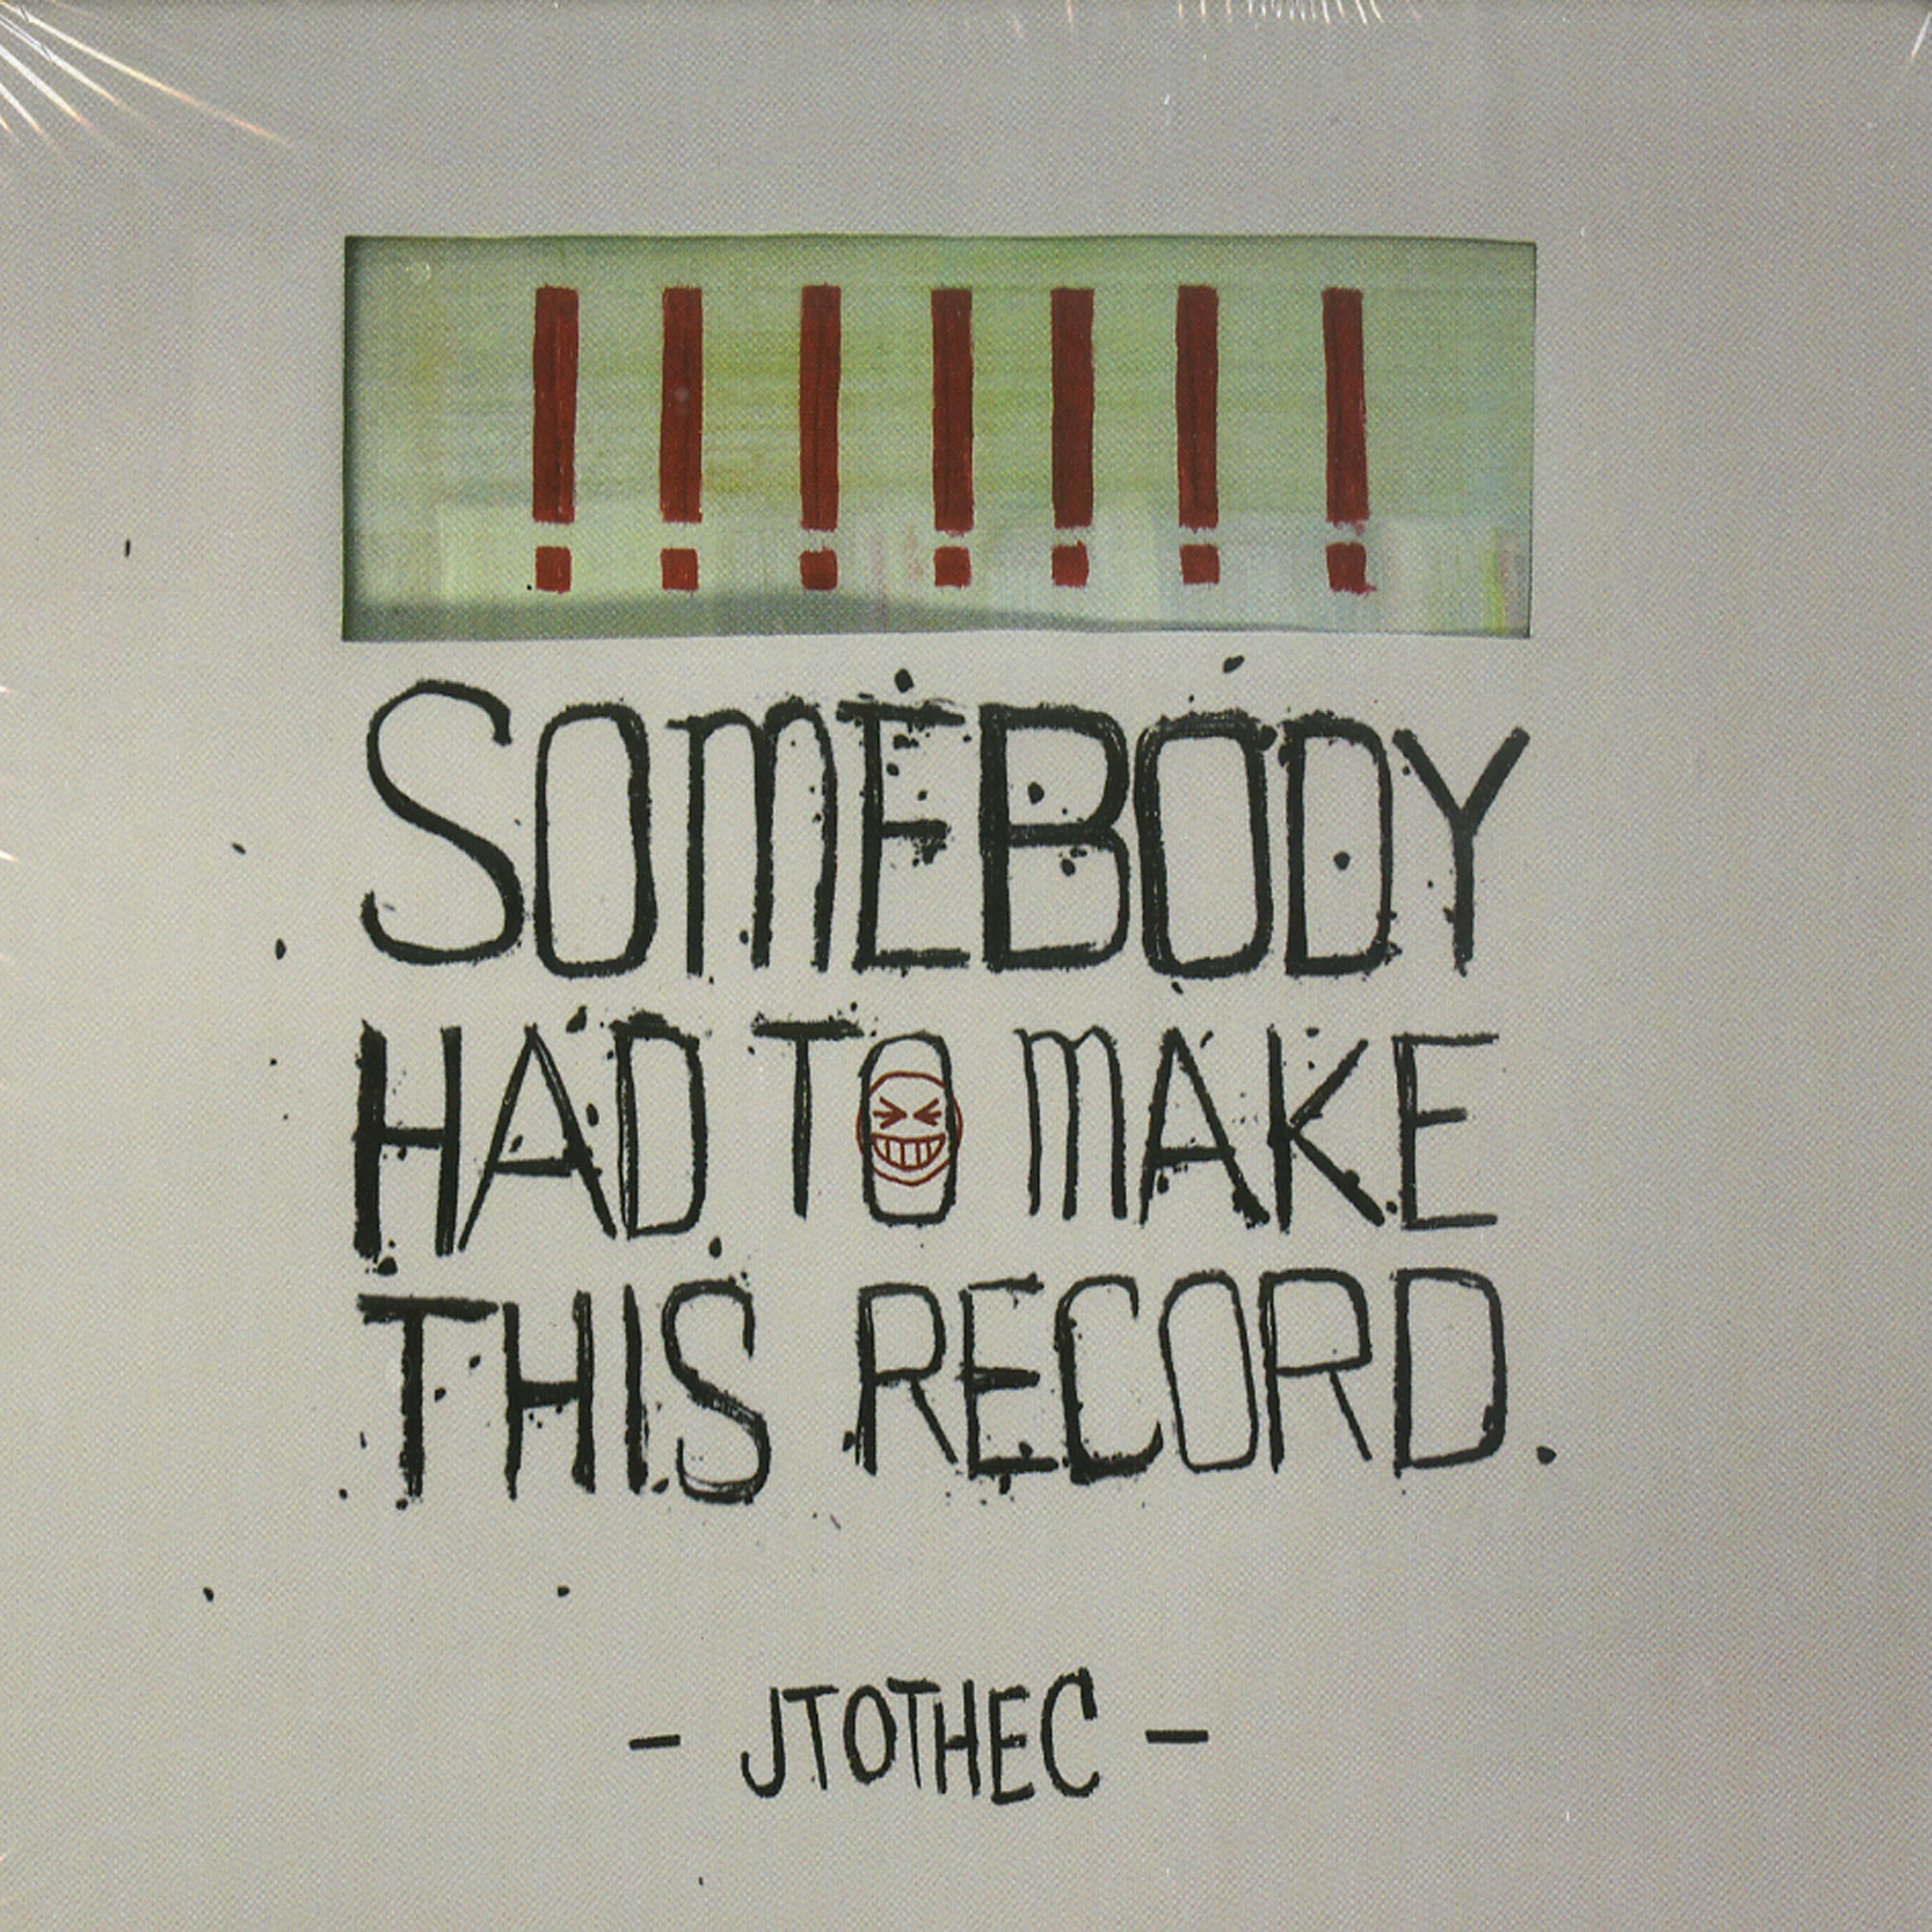 Jtothec - SOMEBODY HAD TO MAKE THIS RECORD